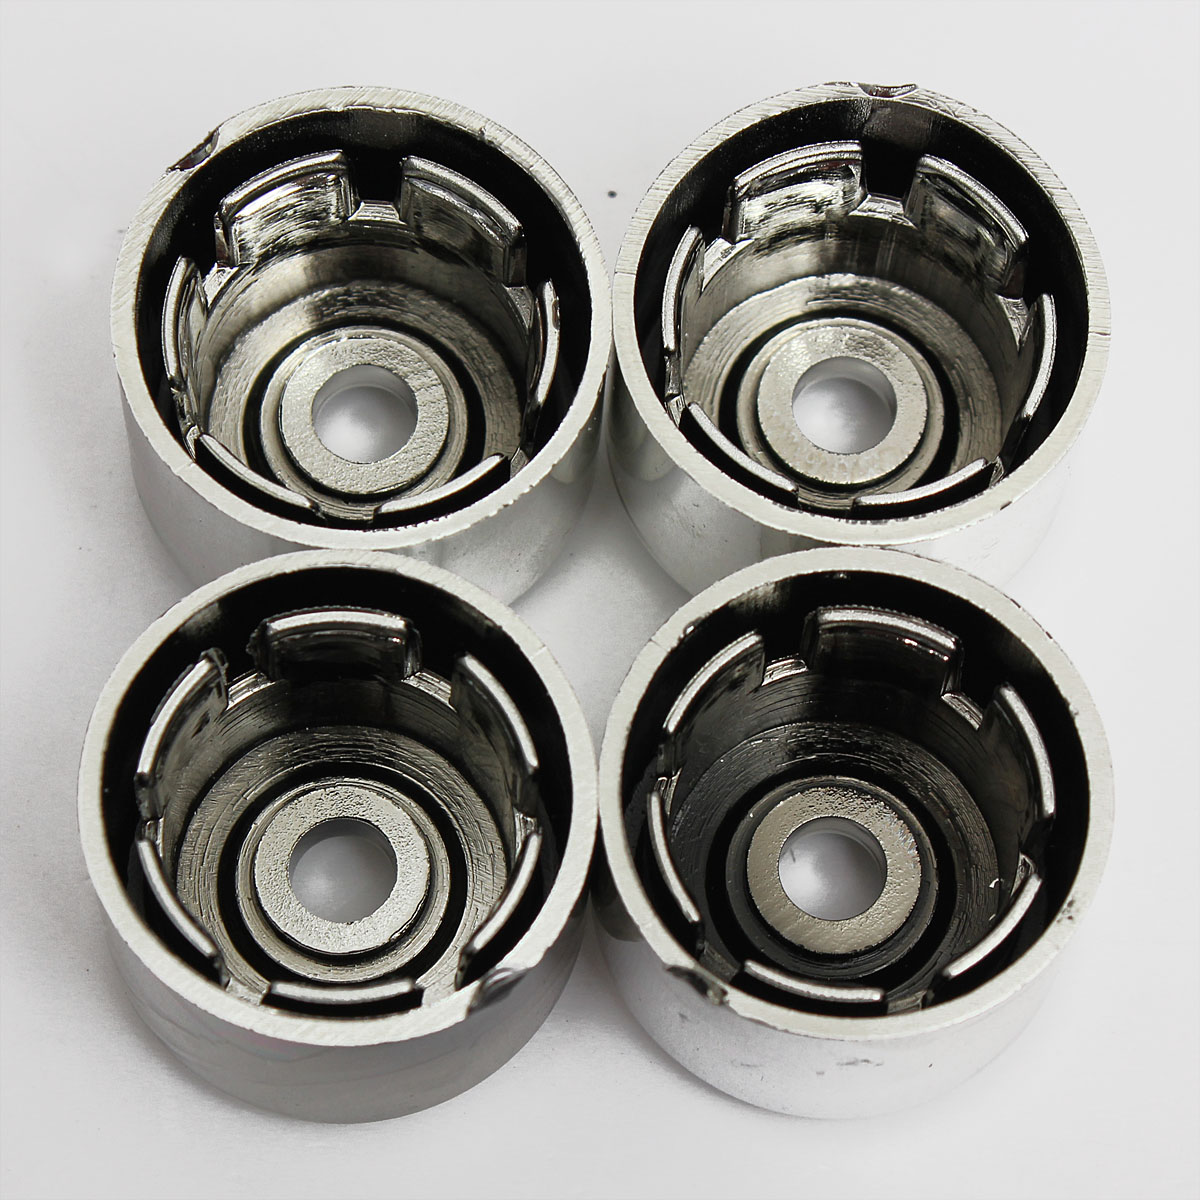 17mm Chrome Alloy Wheel Locking Nut Bolts Covers Caps For